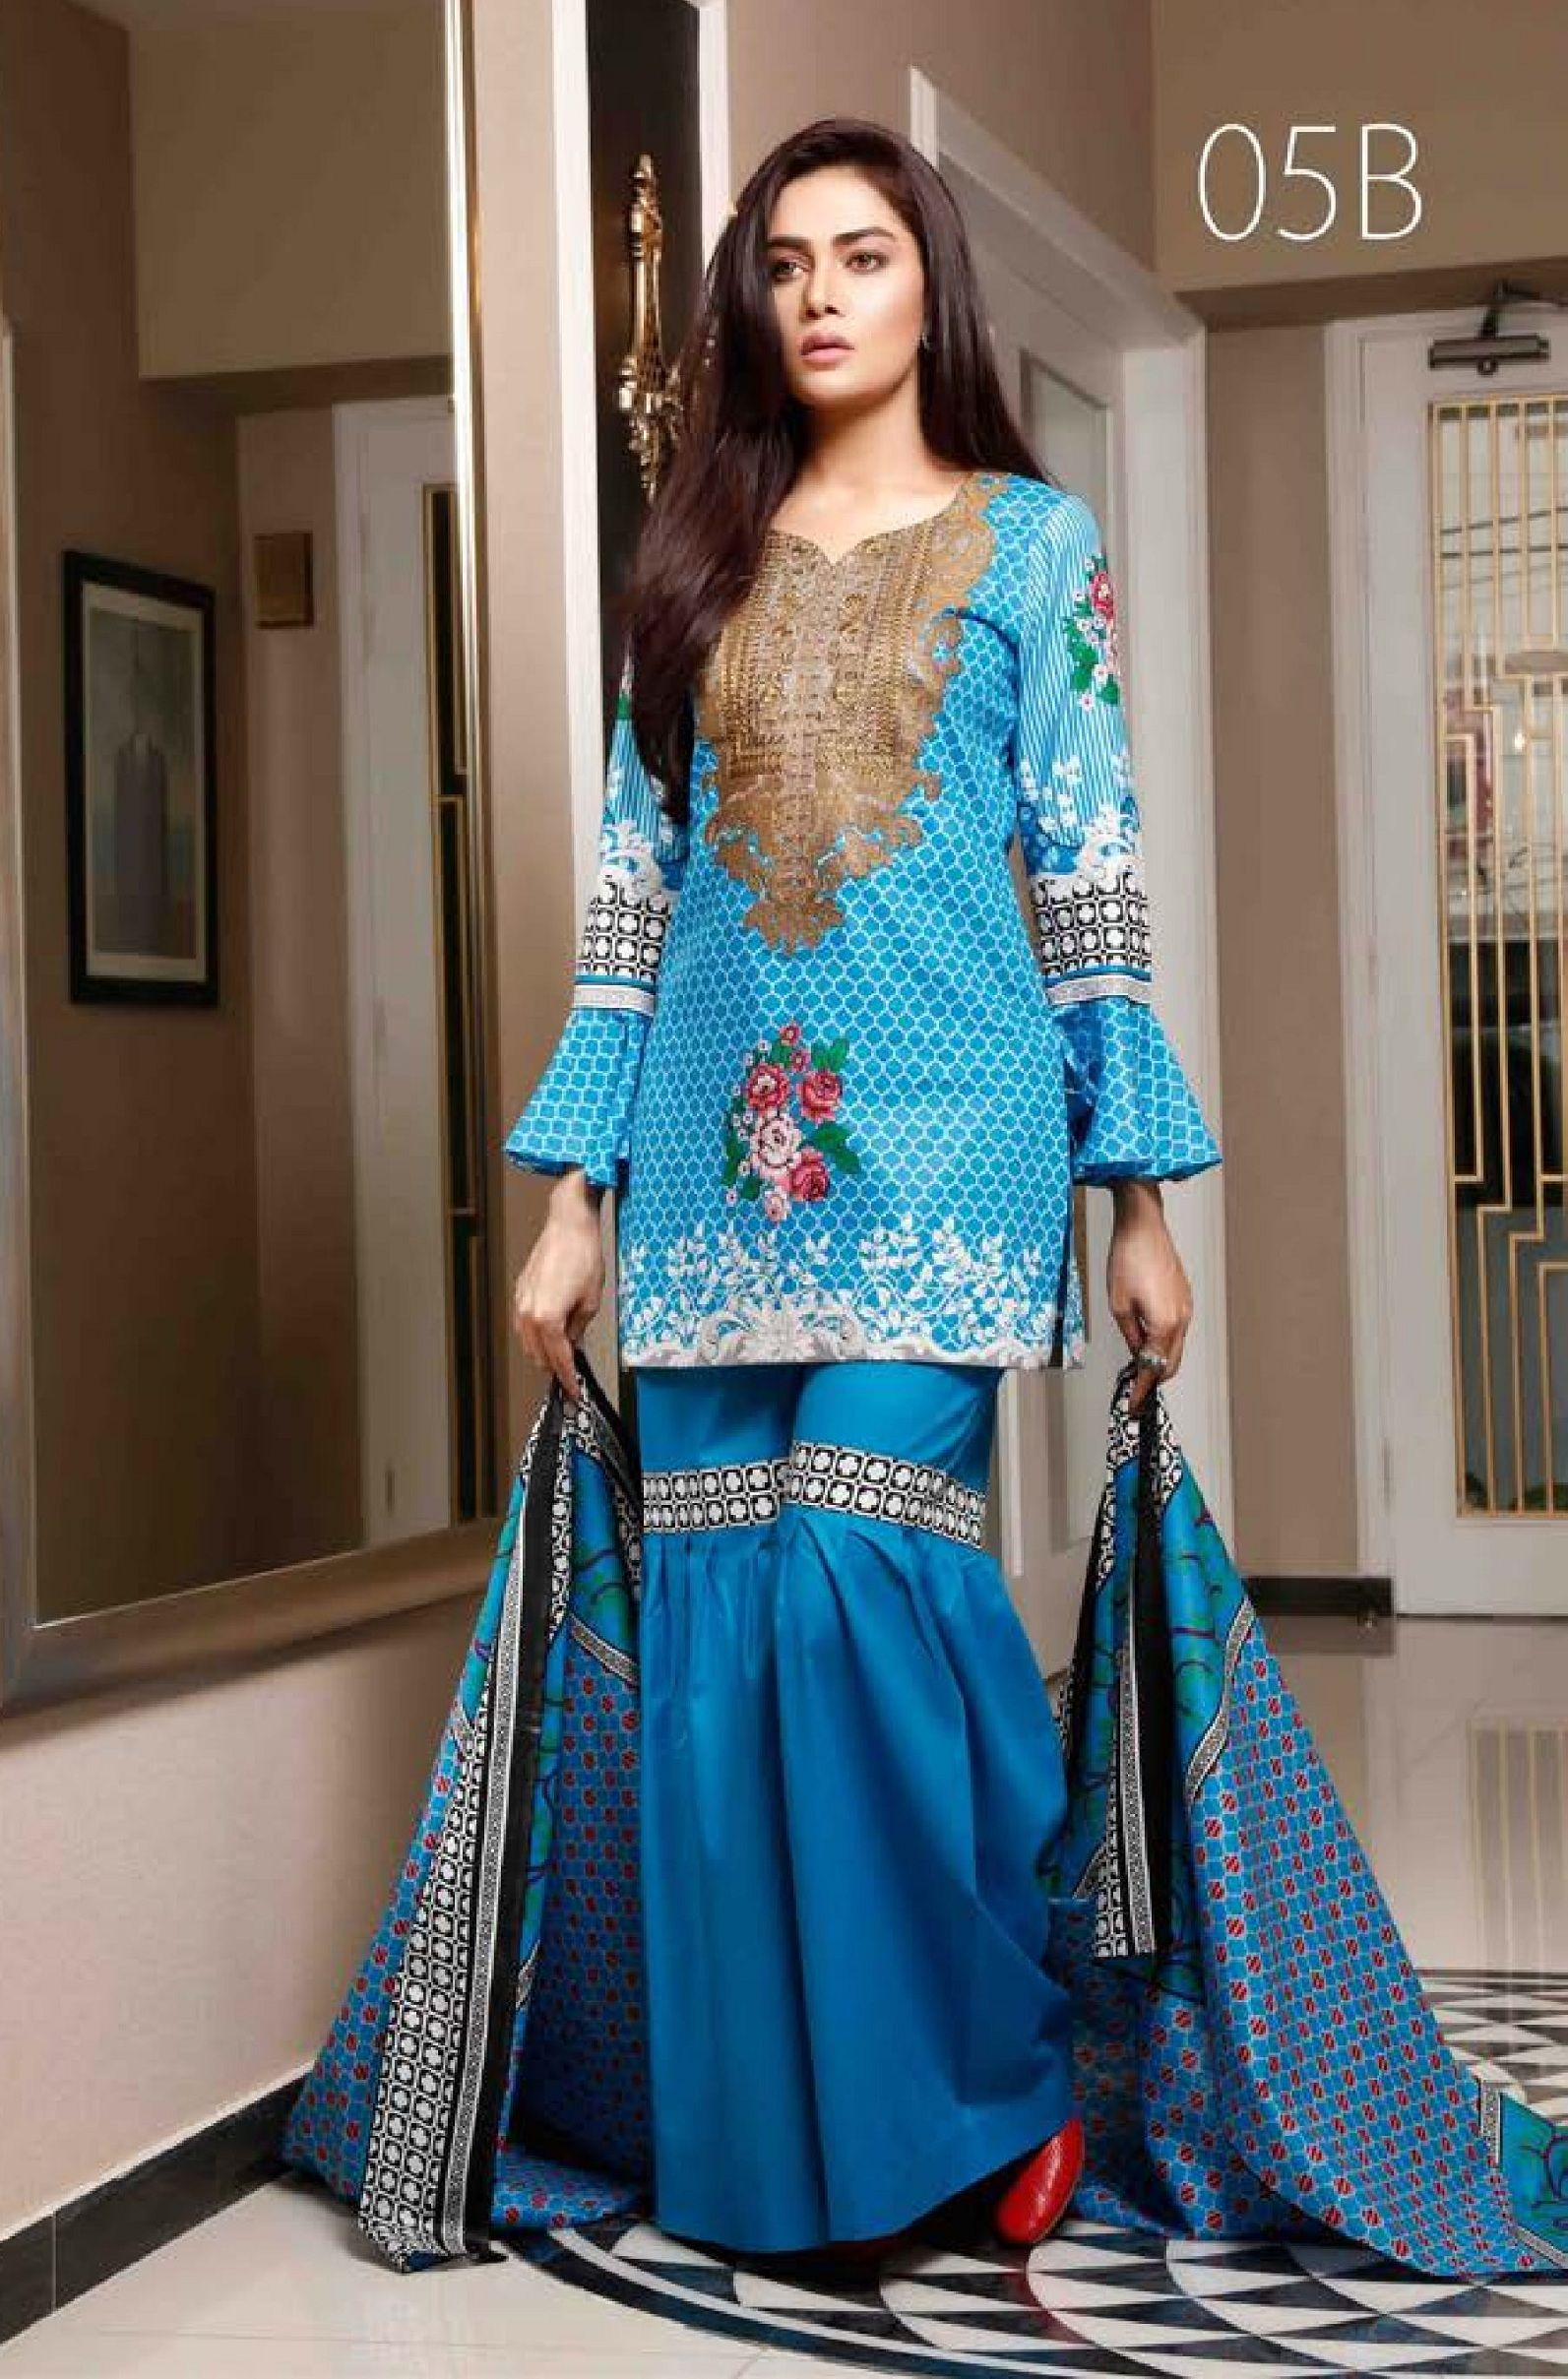 ca7b6ac061 Sahil Collection Presents Lawn Embroidered vol 4 Original Pakistani Suits  05B